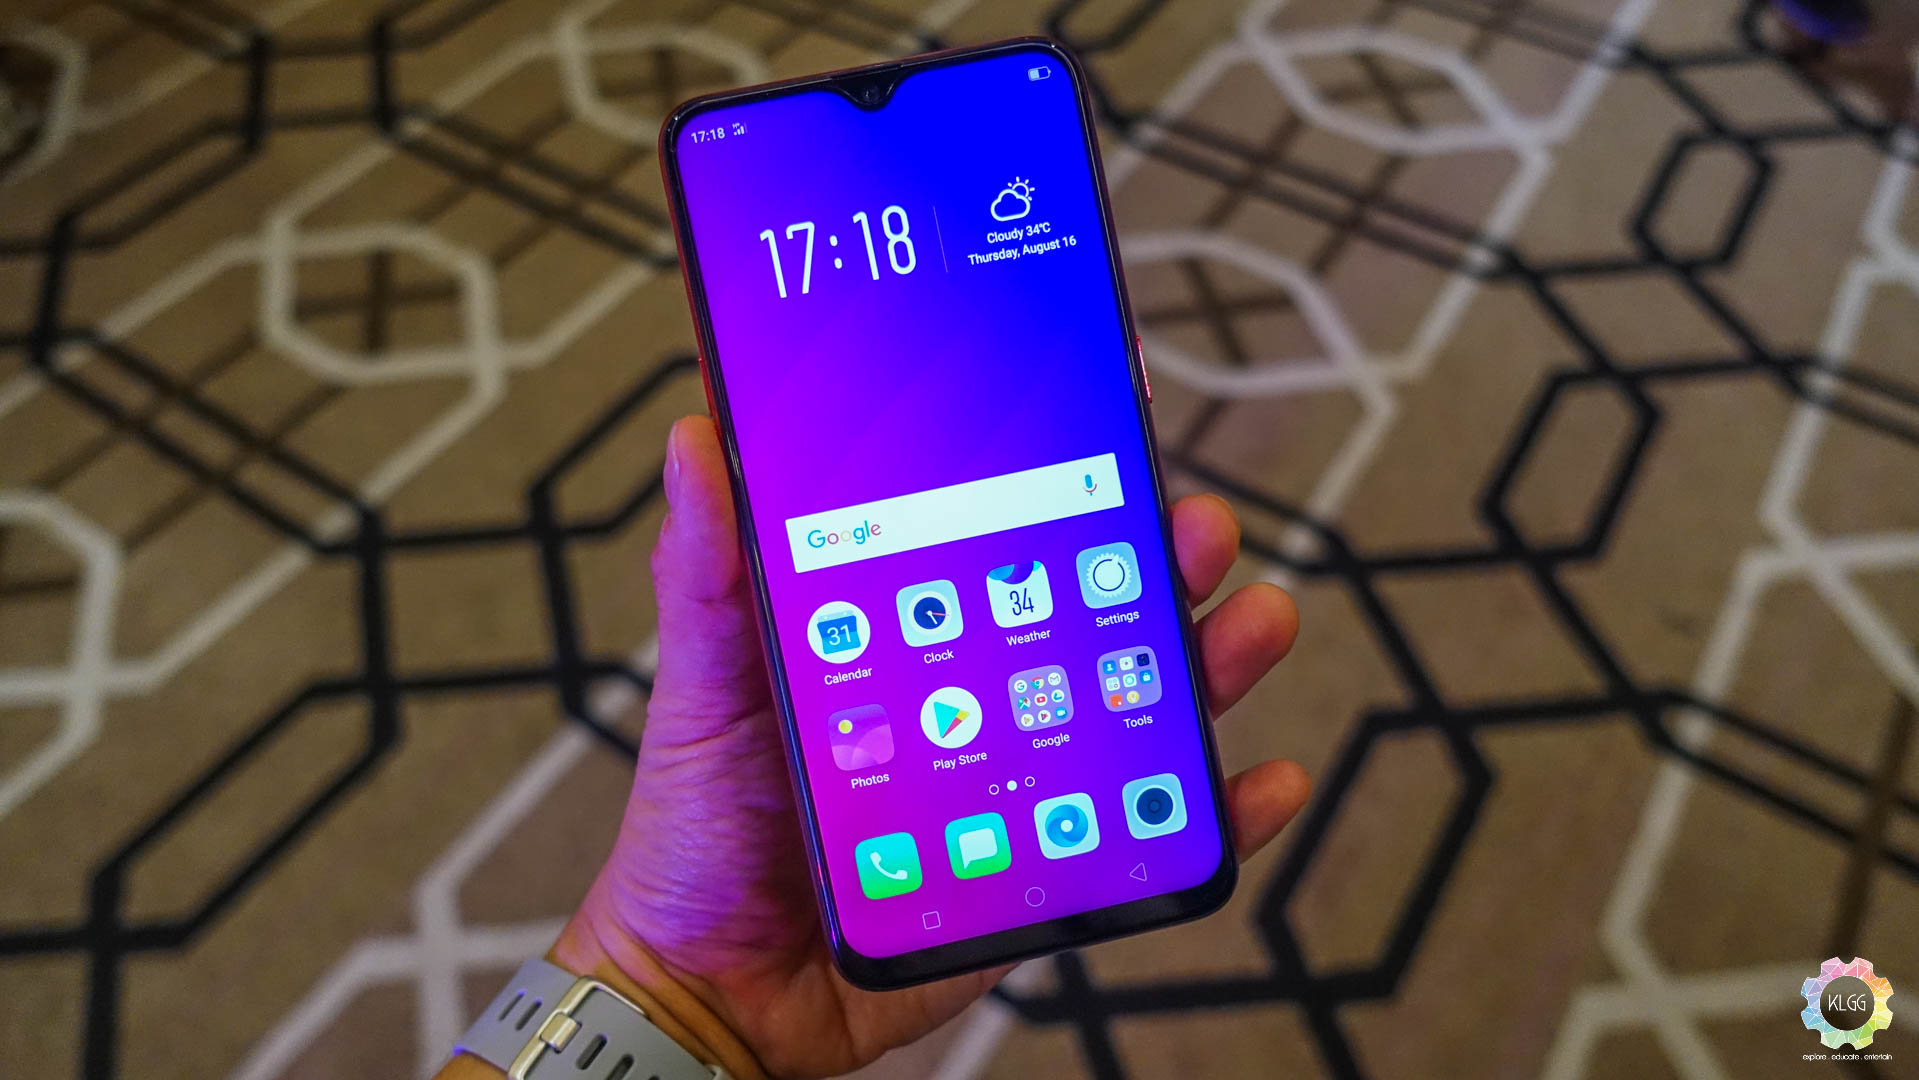 Oppo F9 is now open for pre-orders with a price of RM1,399 1